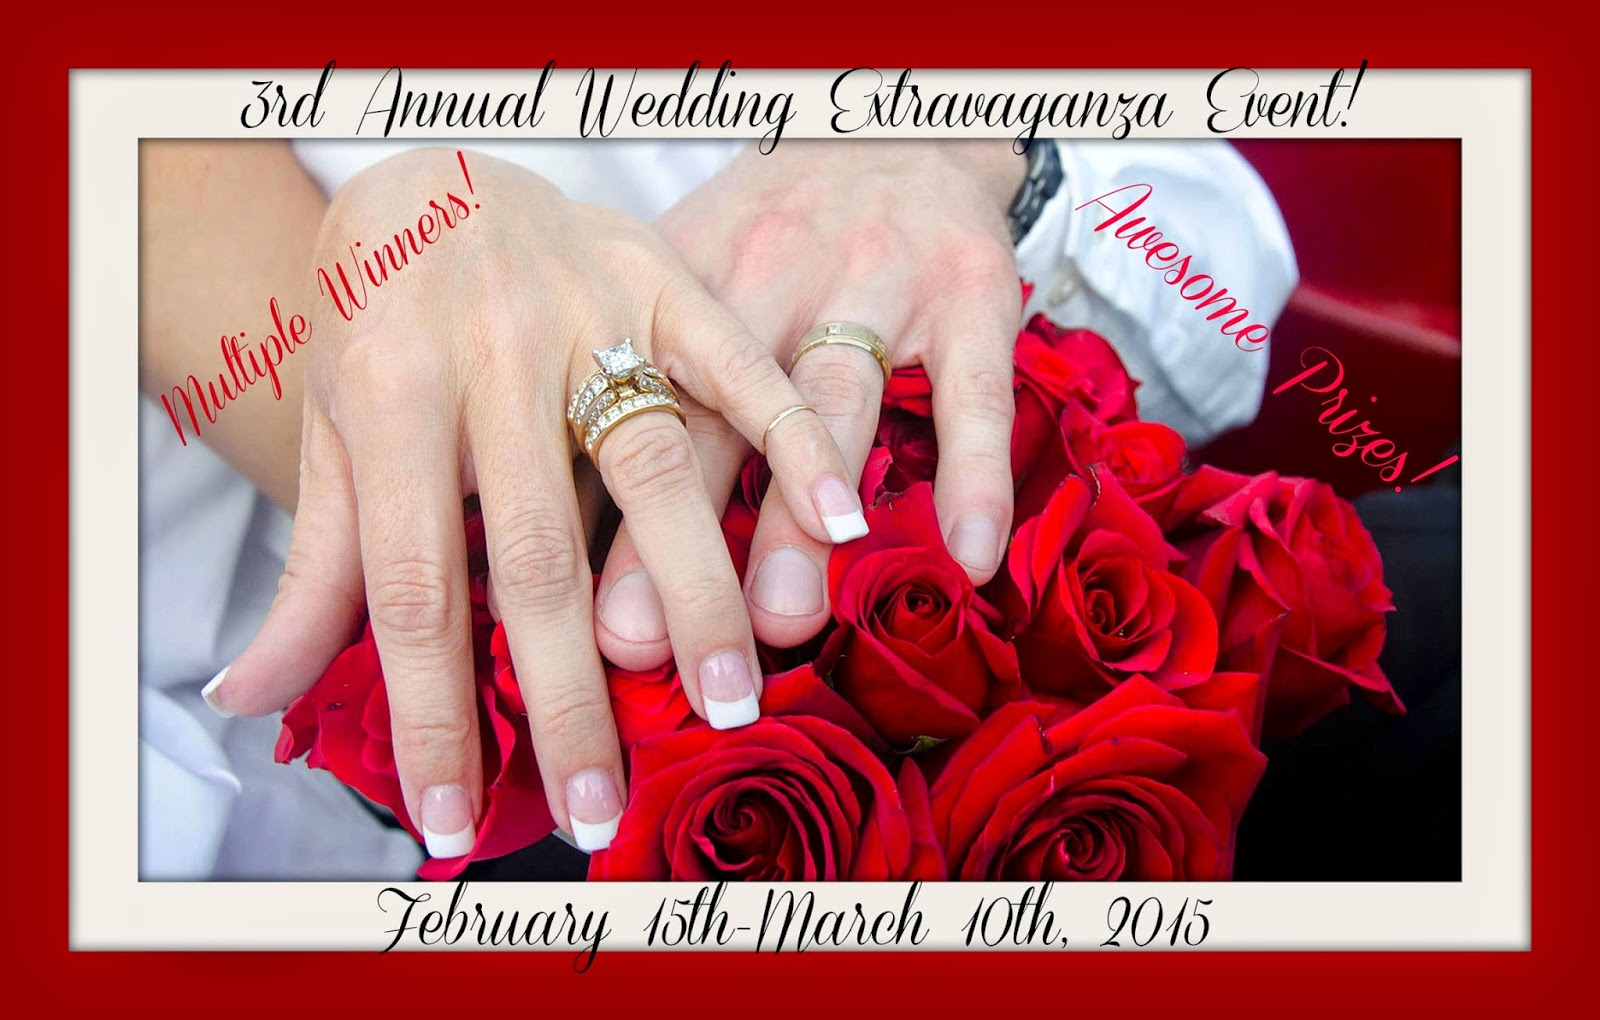 Enter to Win the 3rd Annual Wedding Extravaganza Event before it ends on 3/10